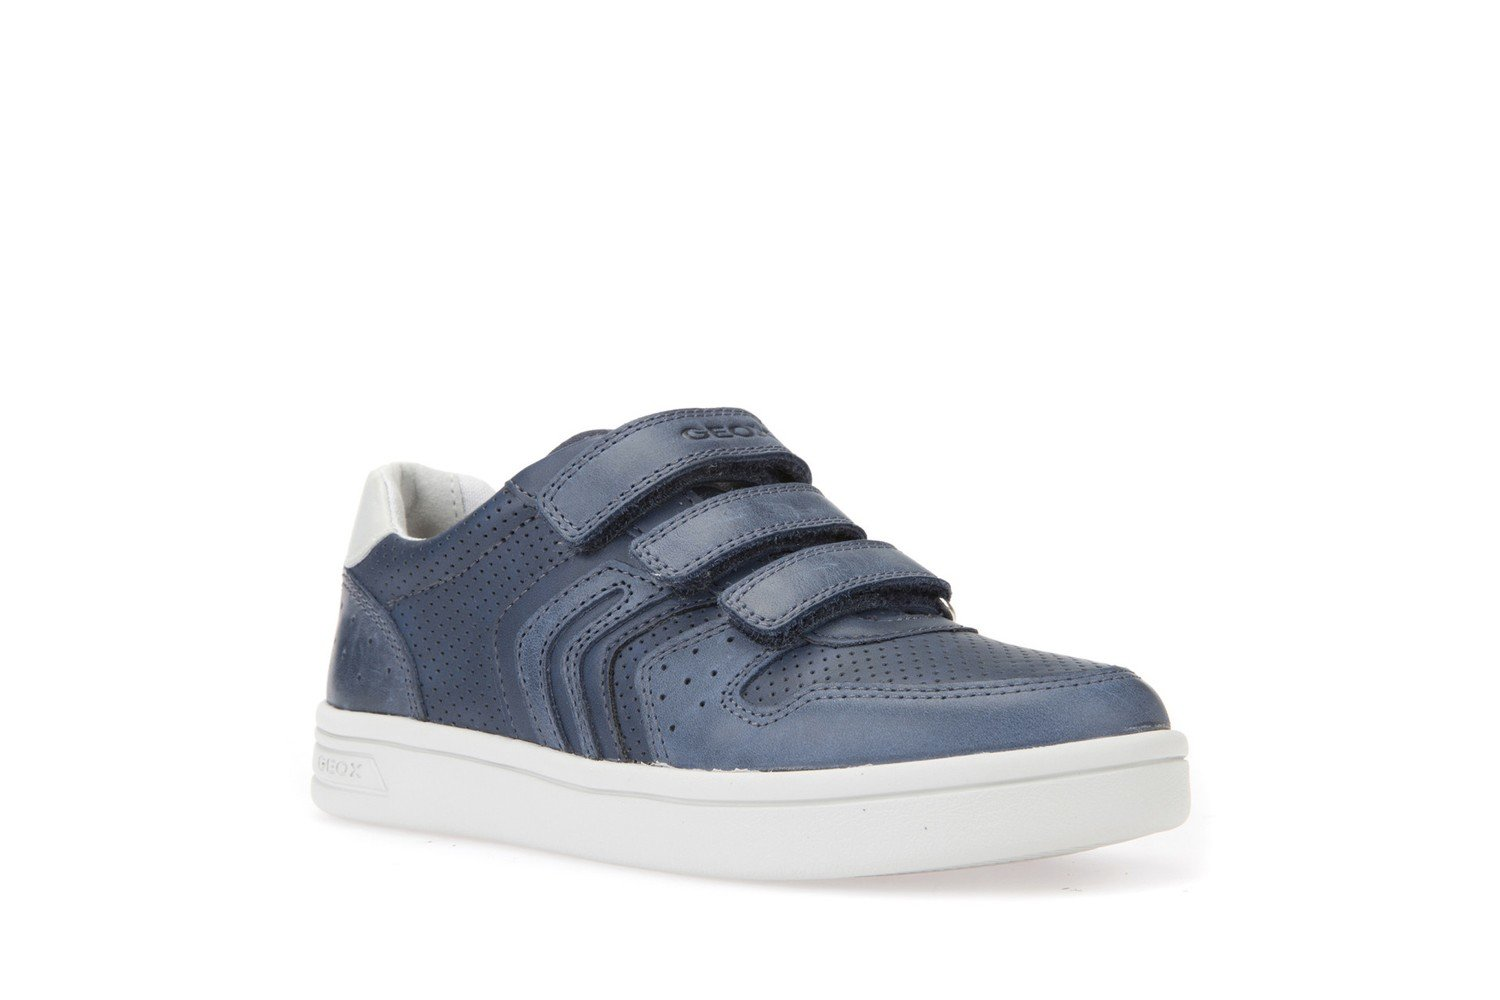 detailed look 810ce cb4ae Geox DJ Rock Boys Navy Trainers European Size Range 28-36